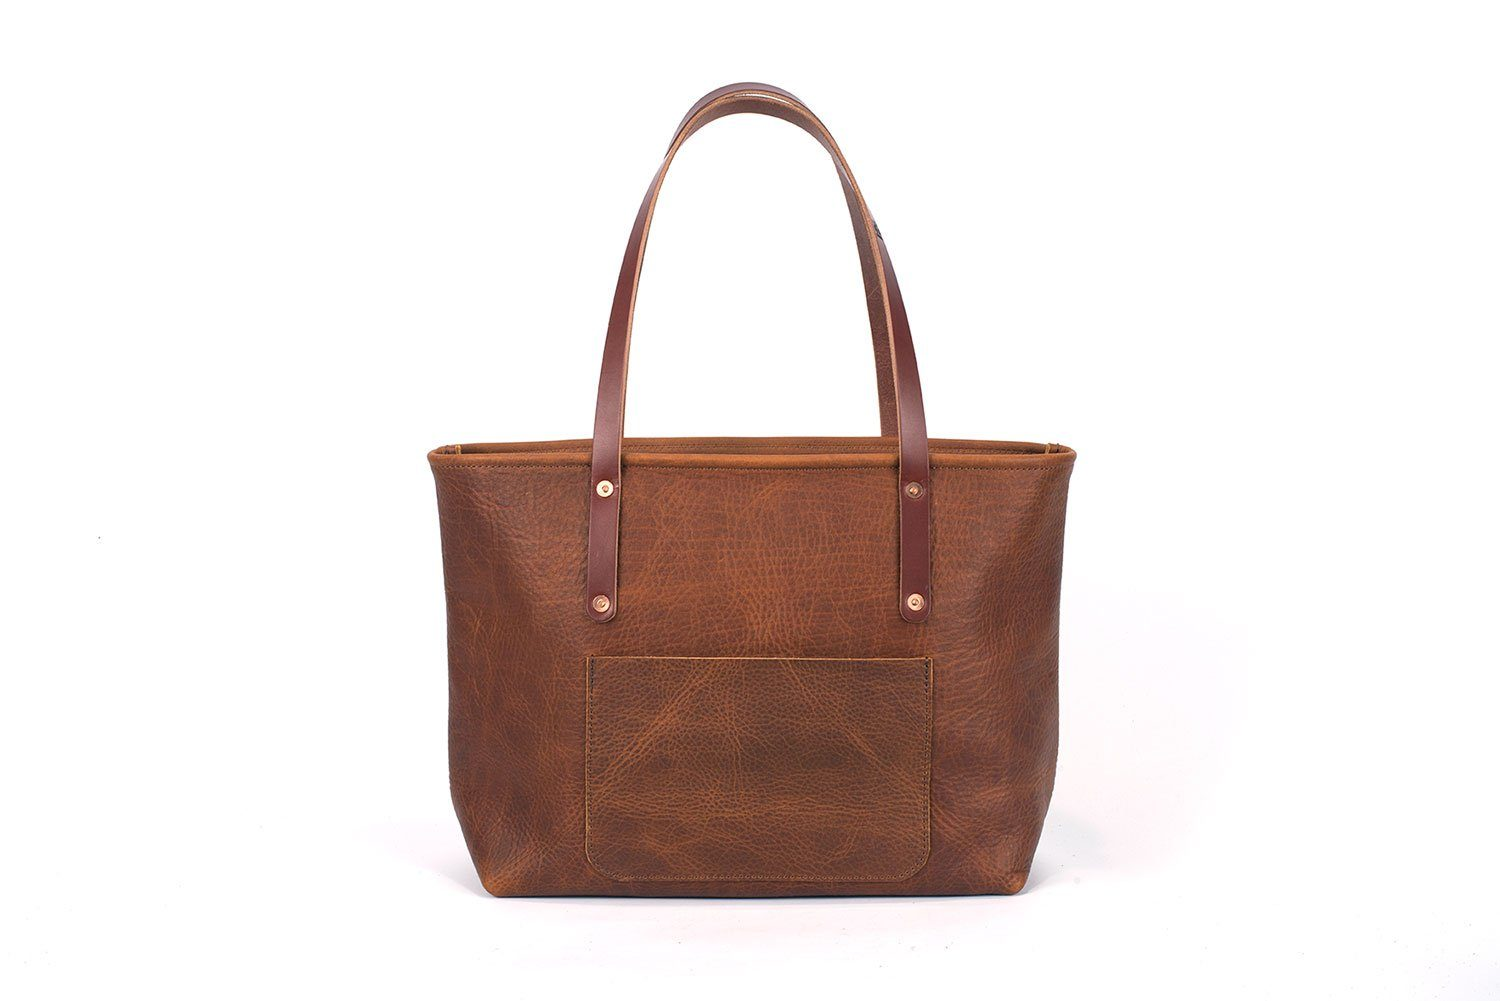 AVERY LEATHER TOTE BAG WITH ZIPPER - LARGE DELUXE